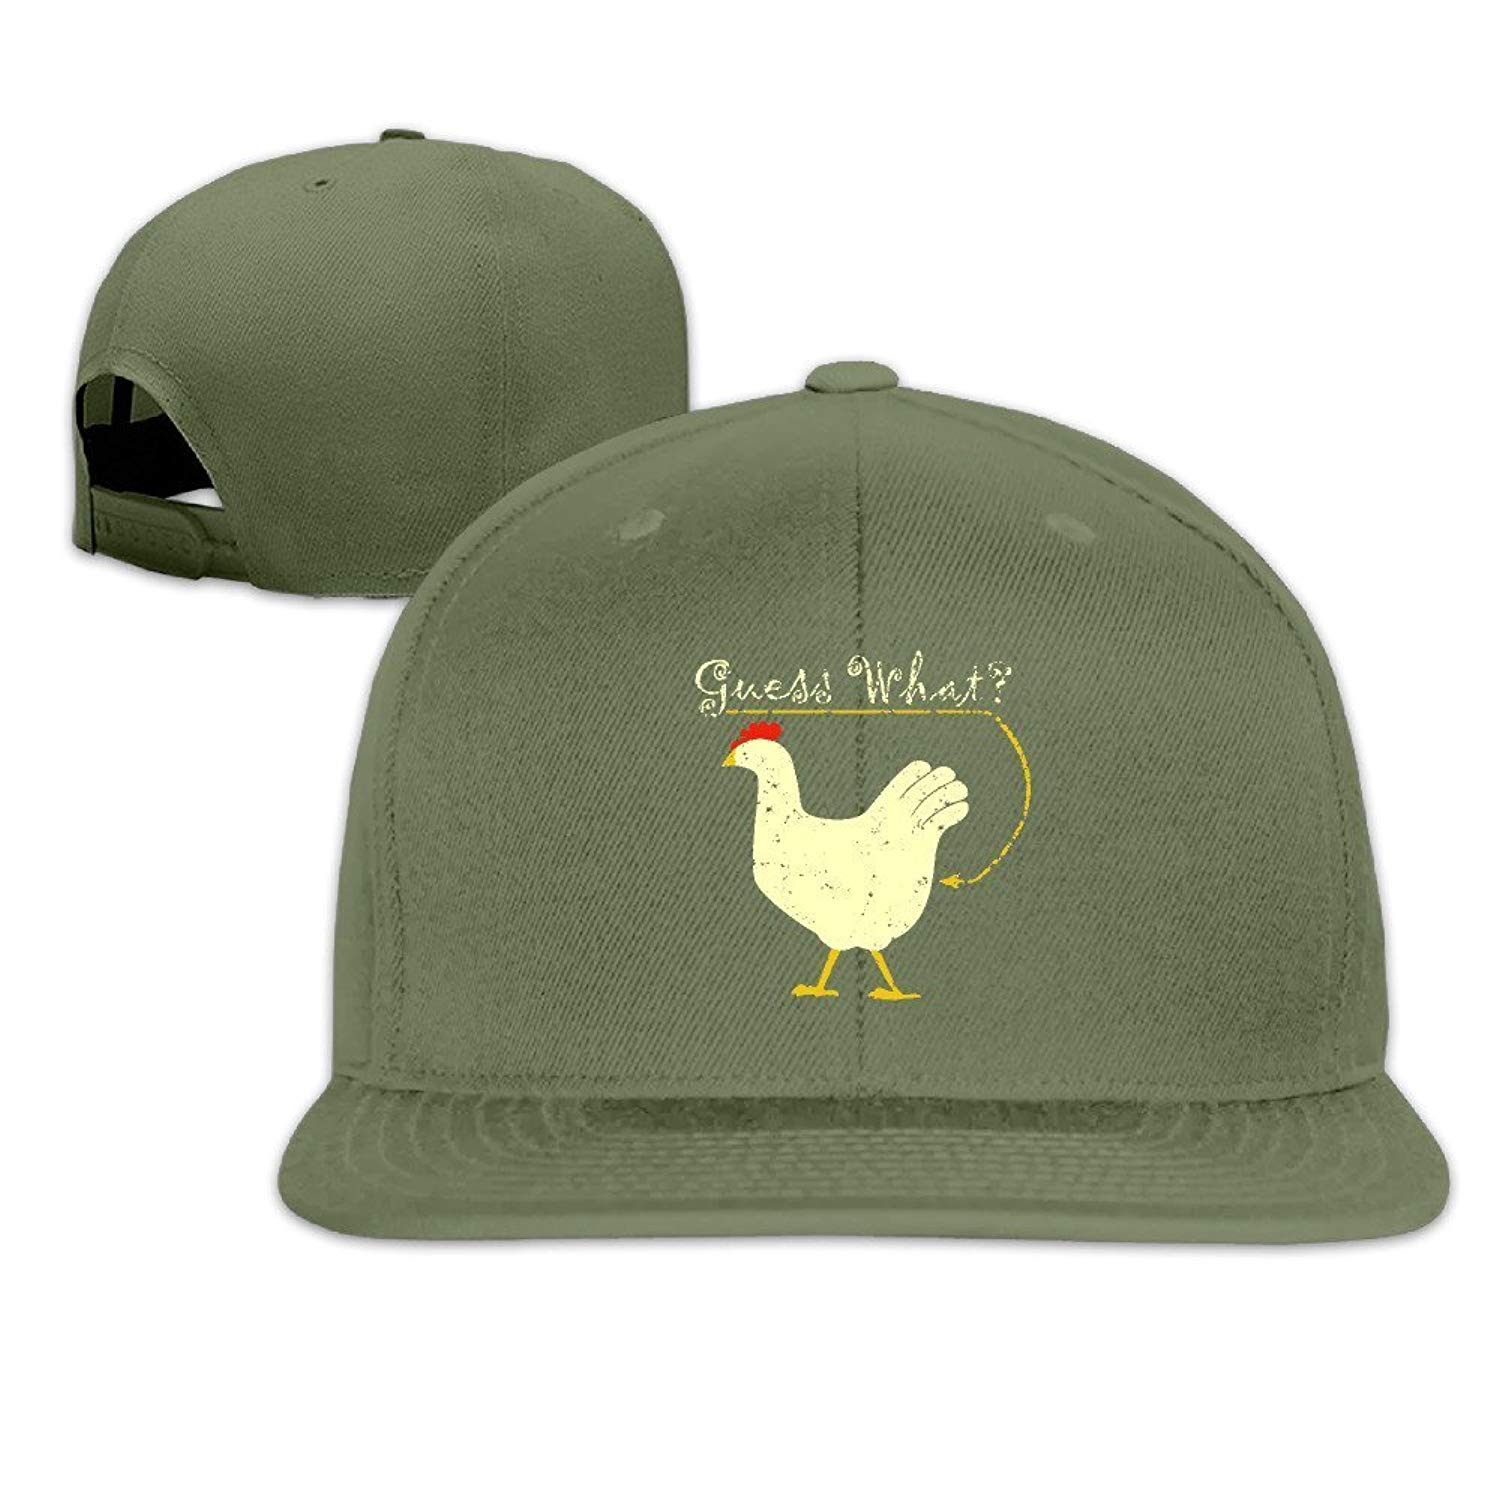 24ccdb0e070e Adult Unisex Cute Crazy Guess What Chicken Butt Funny Humor Plain Caps Sun  Hats Beanies Hats